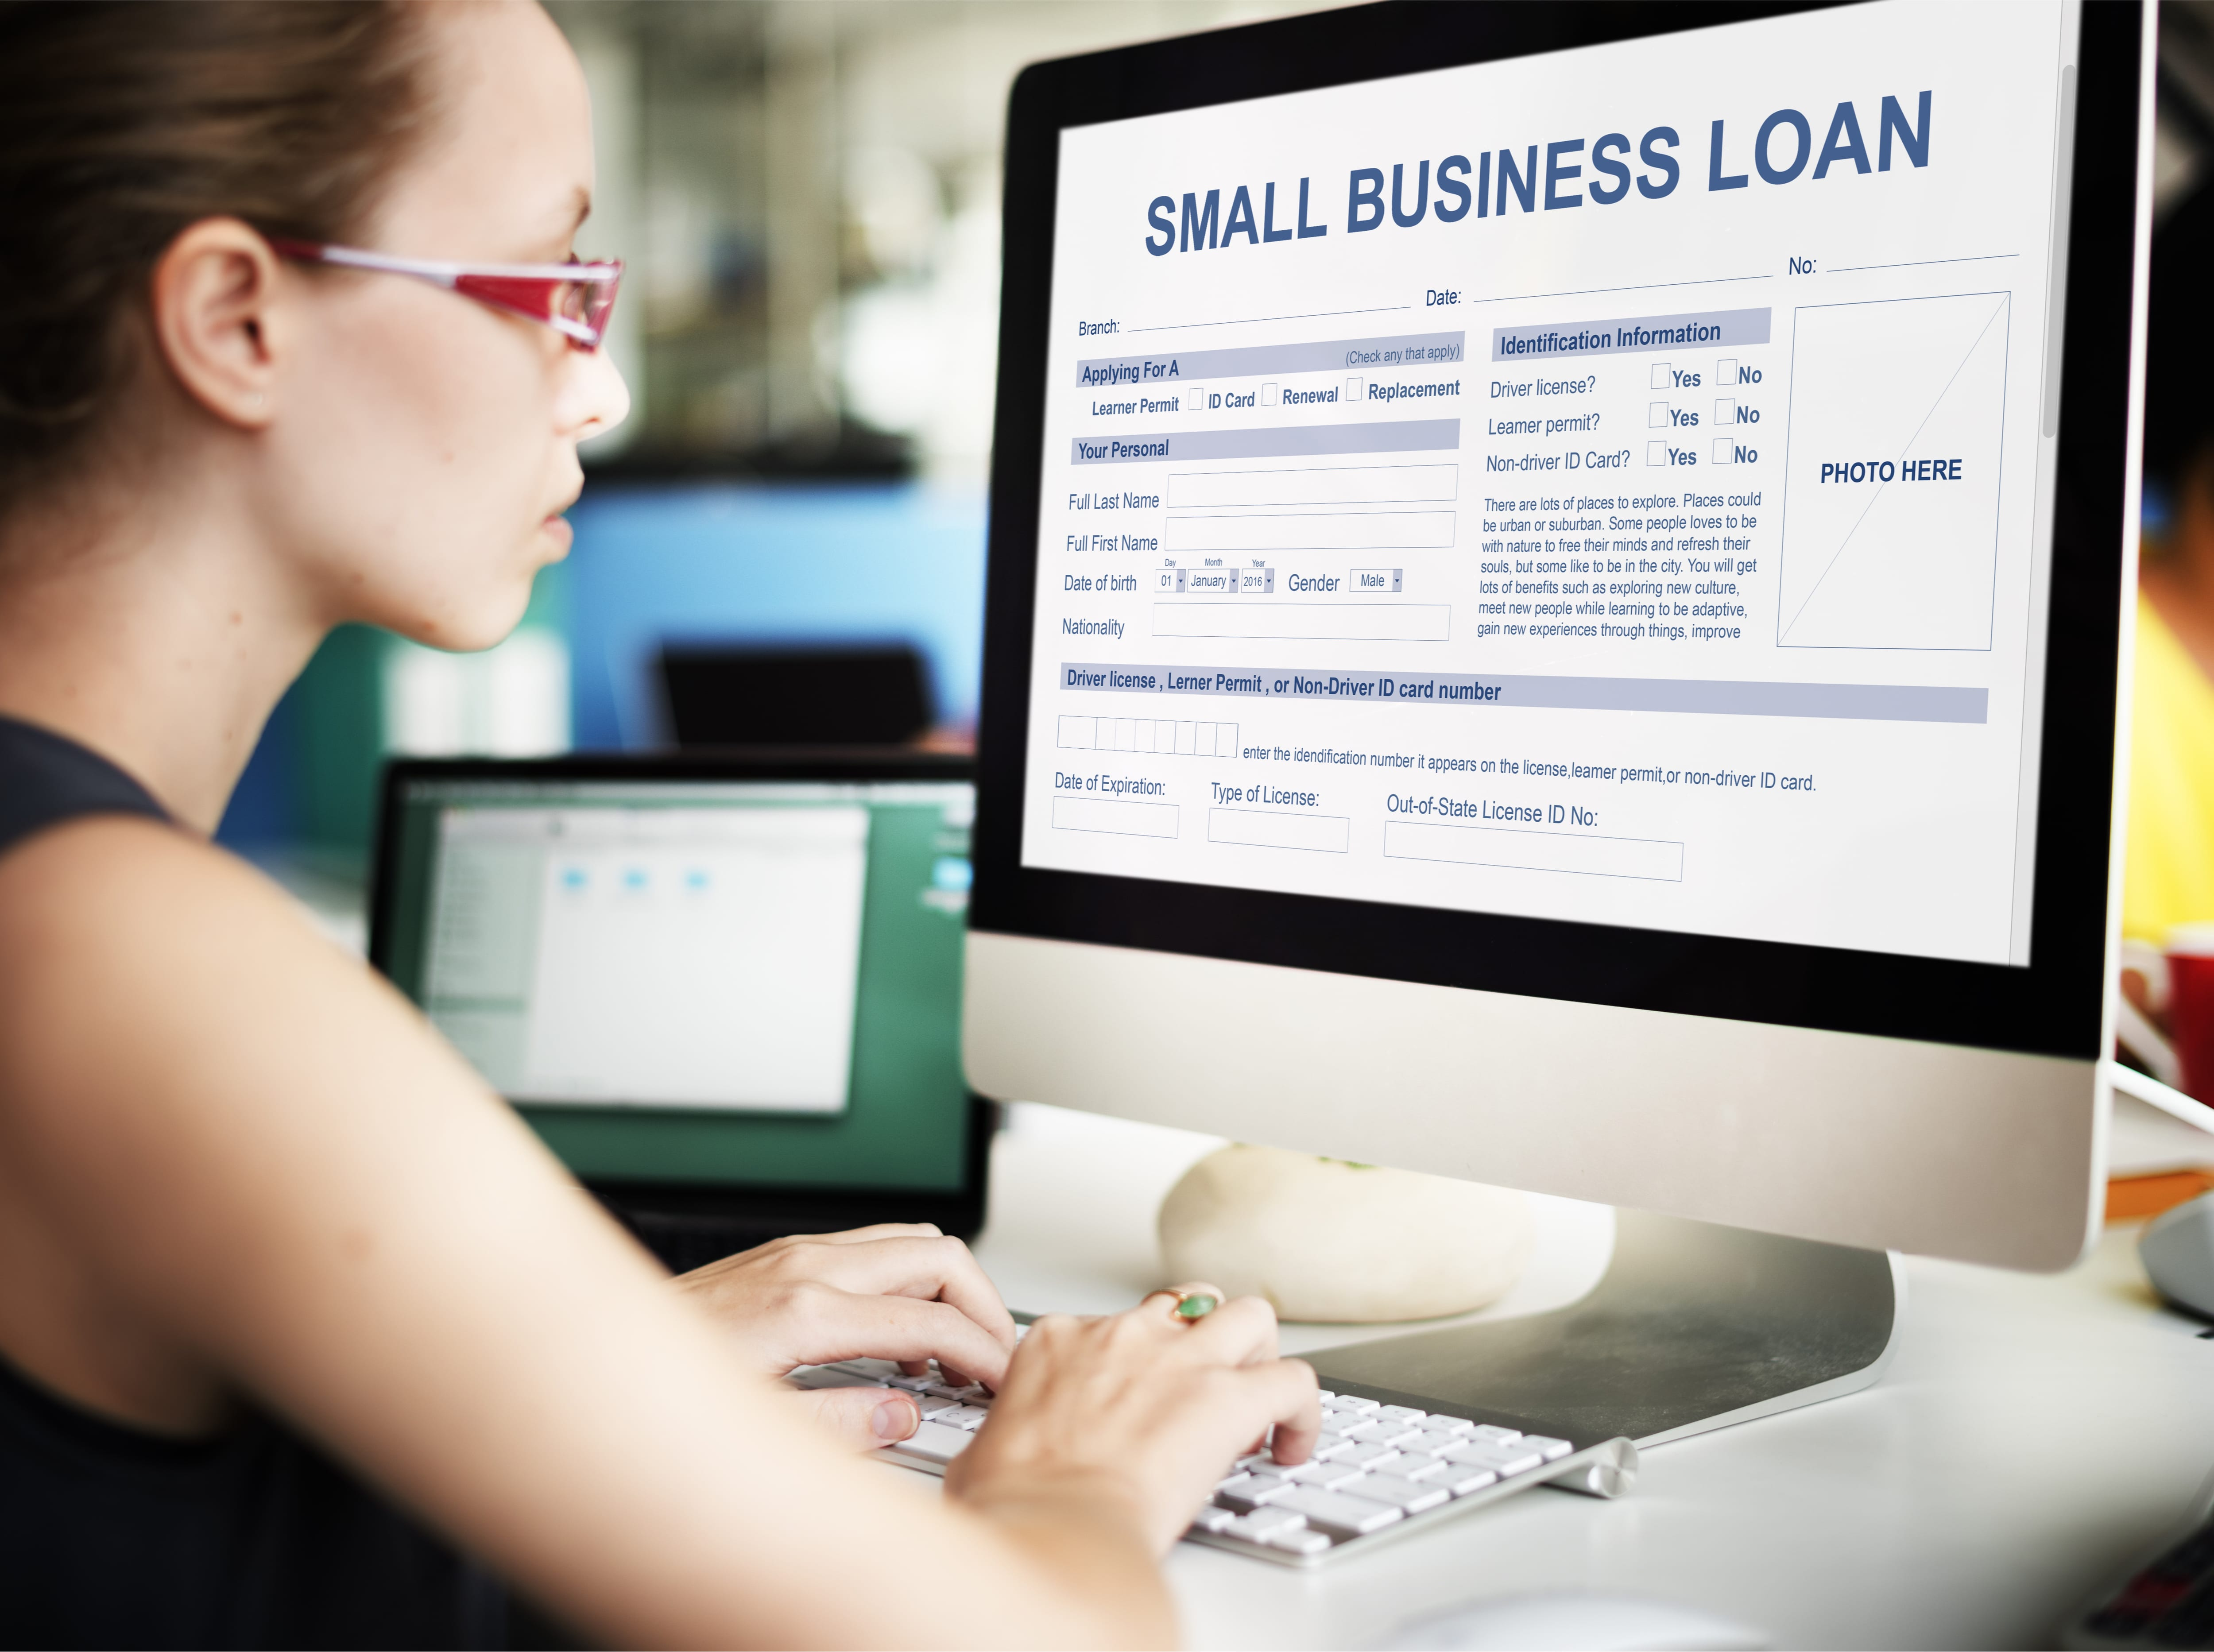 CA Proposes Lending Regs To Protect SMB Borrowers